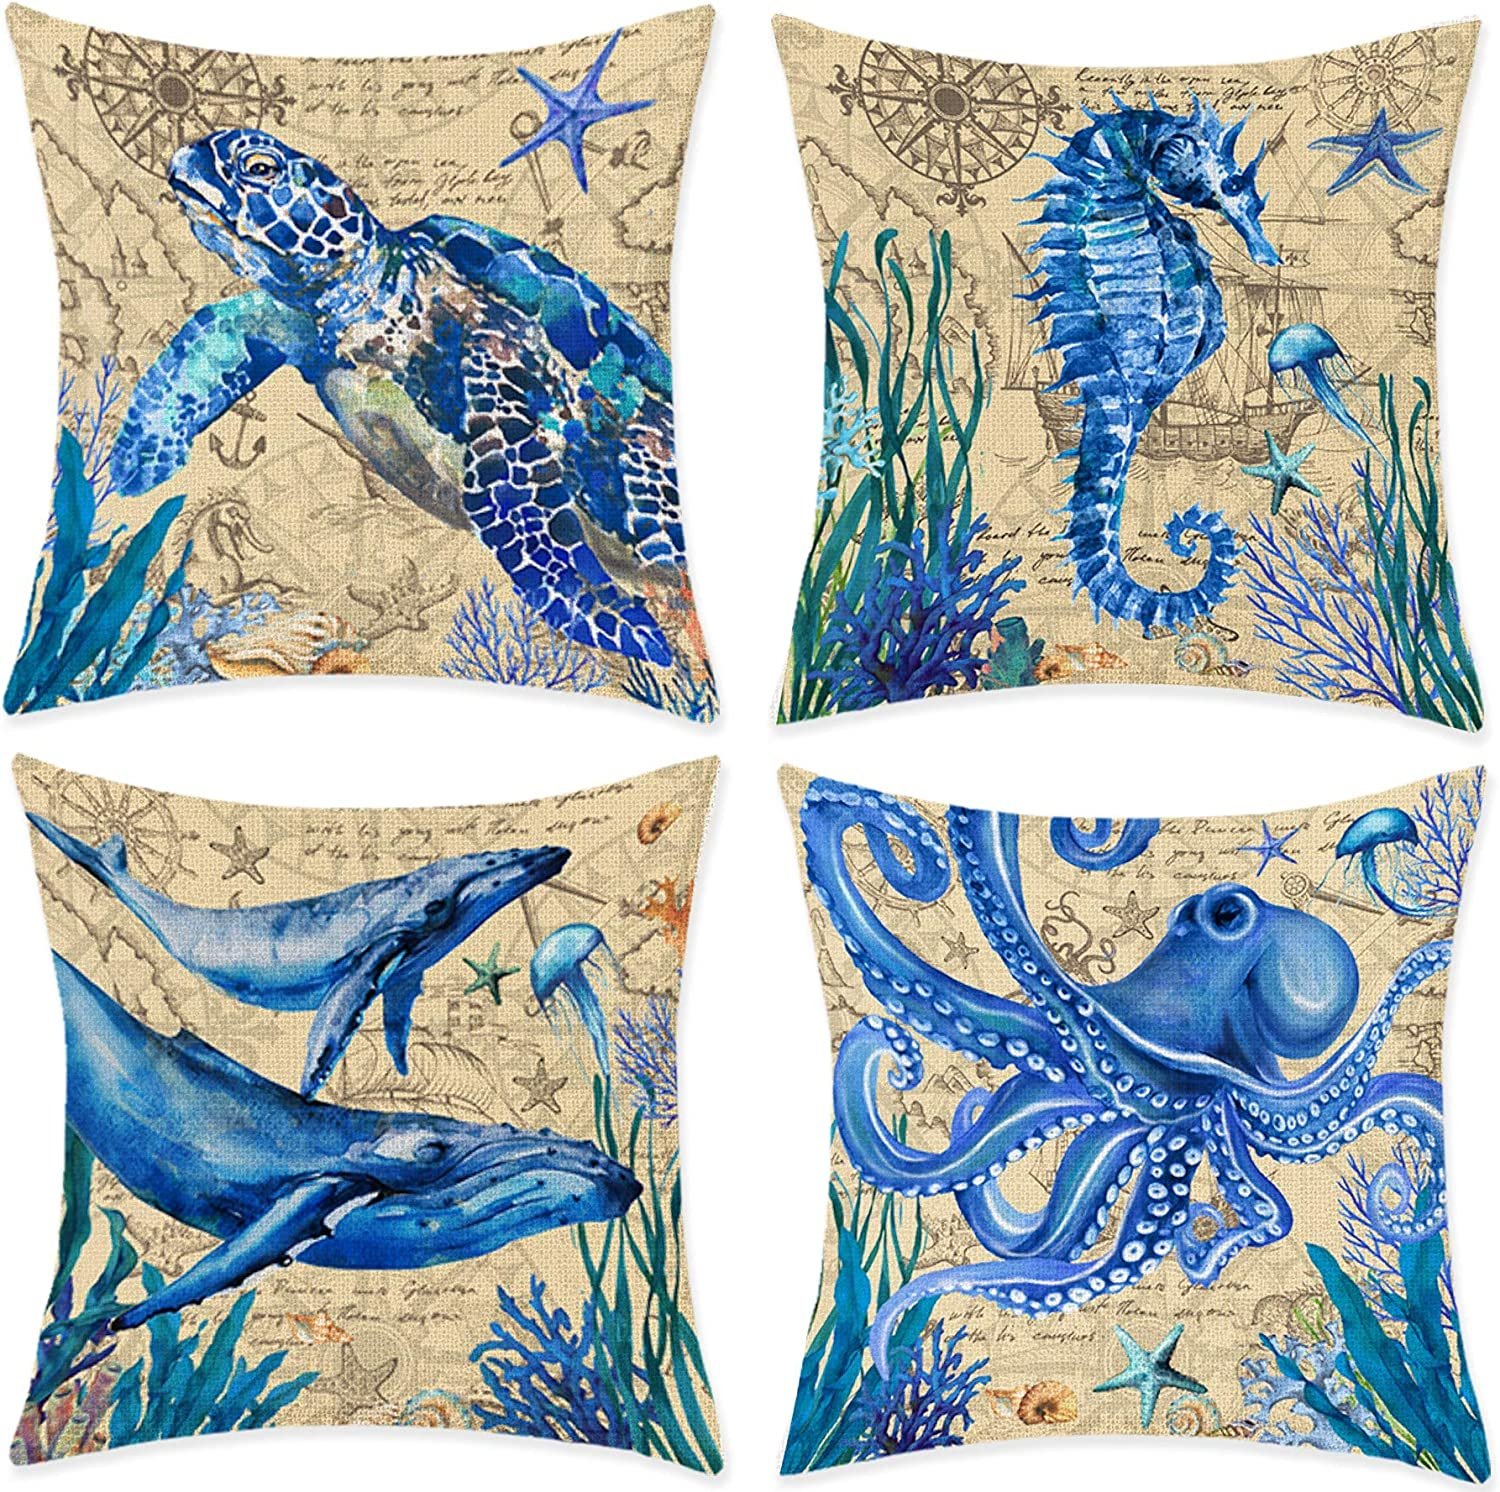 Amazon Com Bonsai Tree Beach Pillow Covers Nautical Ocean Couch Throw Pillow Covers 18 X18 Coastal Sea Turtle Seahorse Whales Octopus Cotton Linen Pillow Cases Summer Home Decorations For Sofa Set Of 4 Home